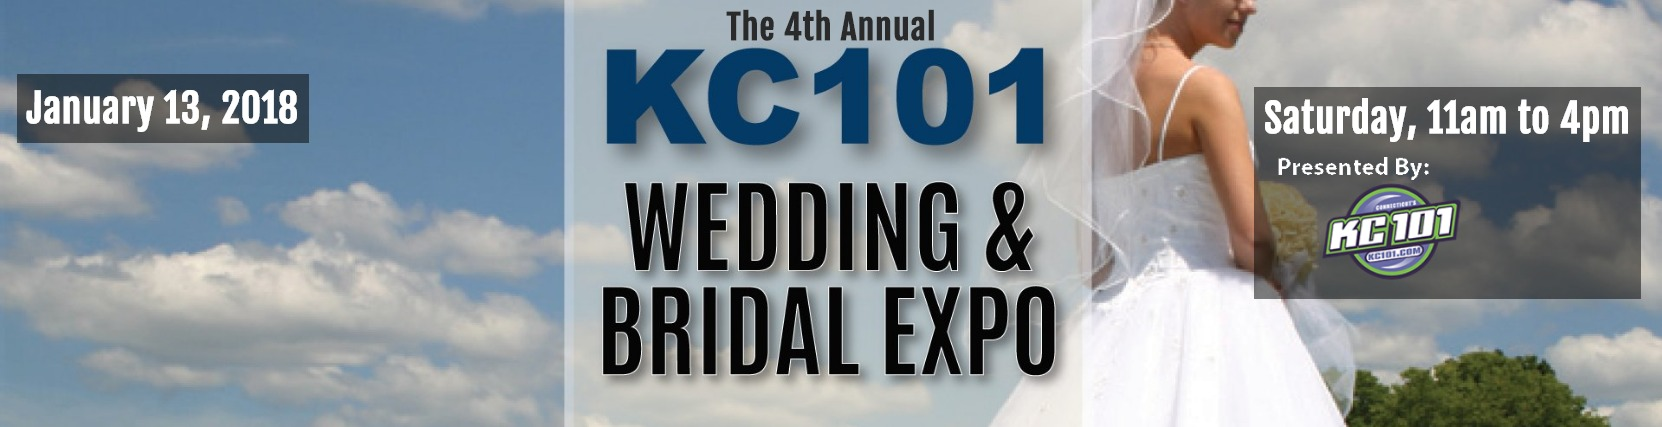 Jenks Productions & KC101 Wedding & Bridal Expo in New Haven, CT. January 13, 2018.